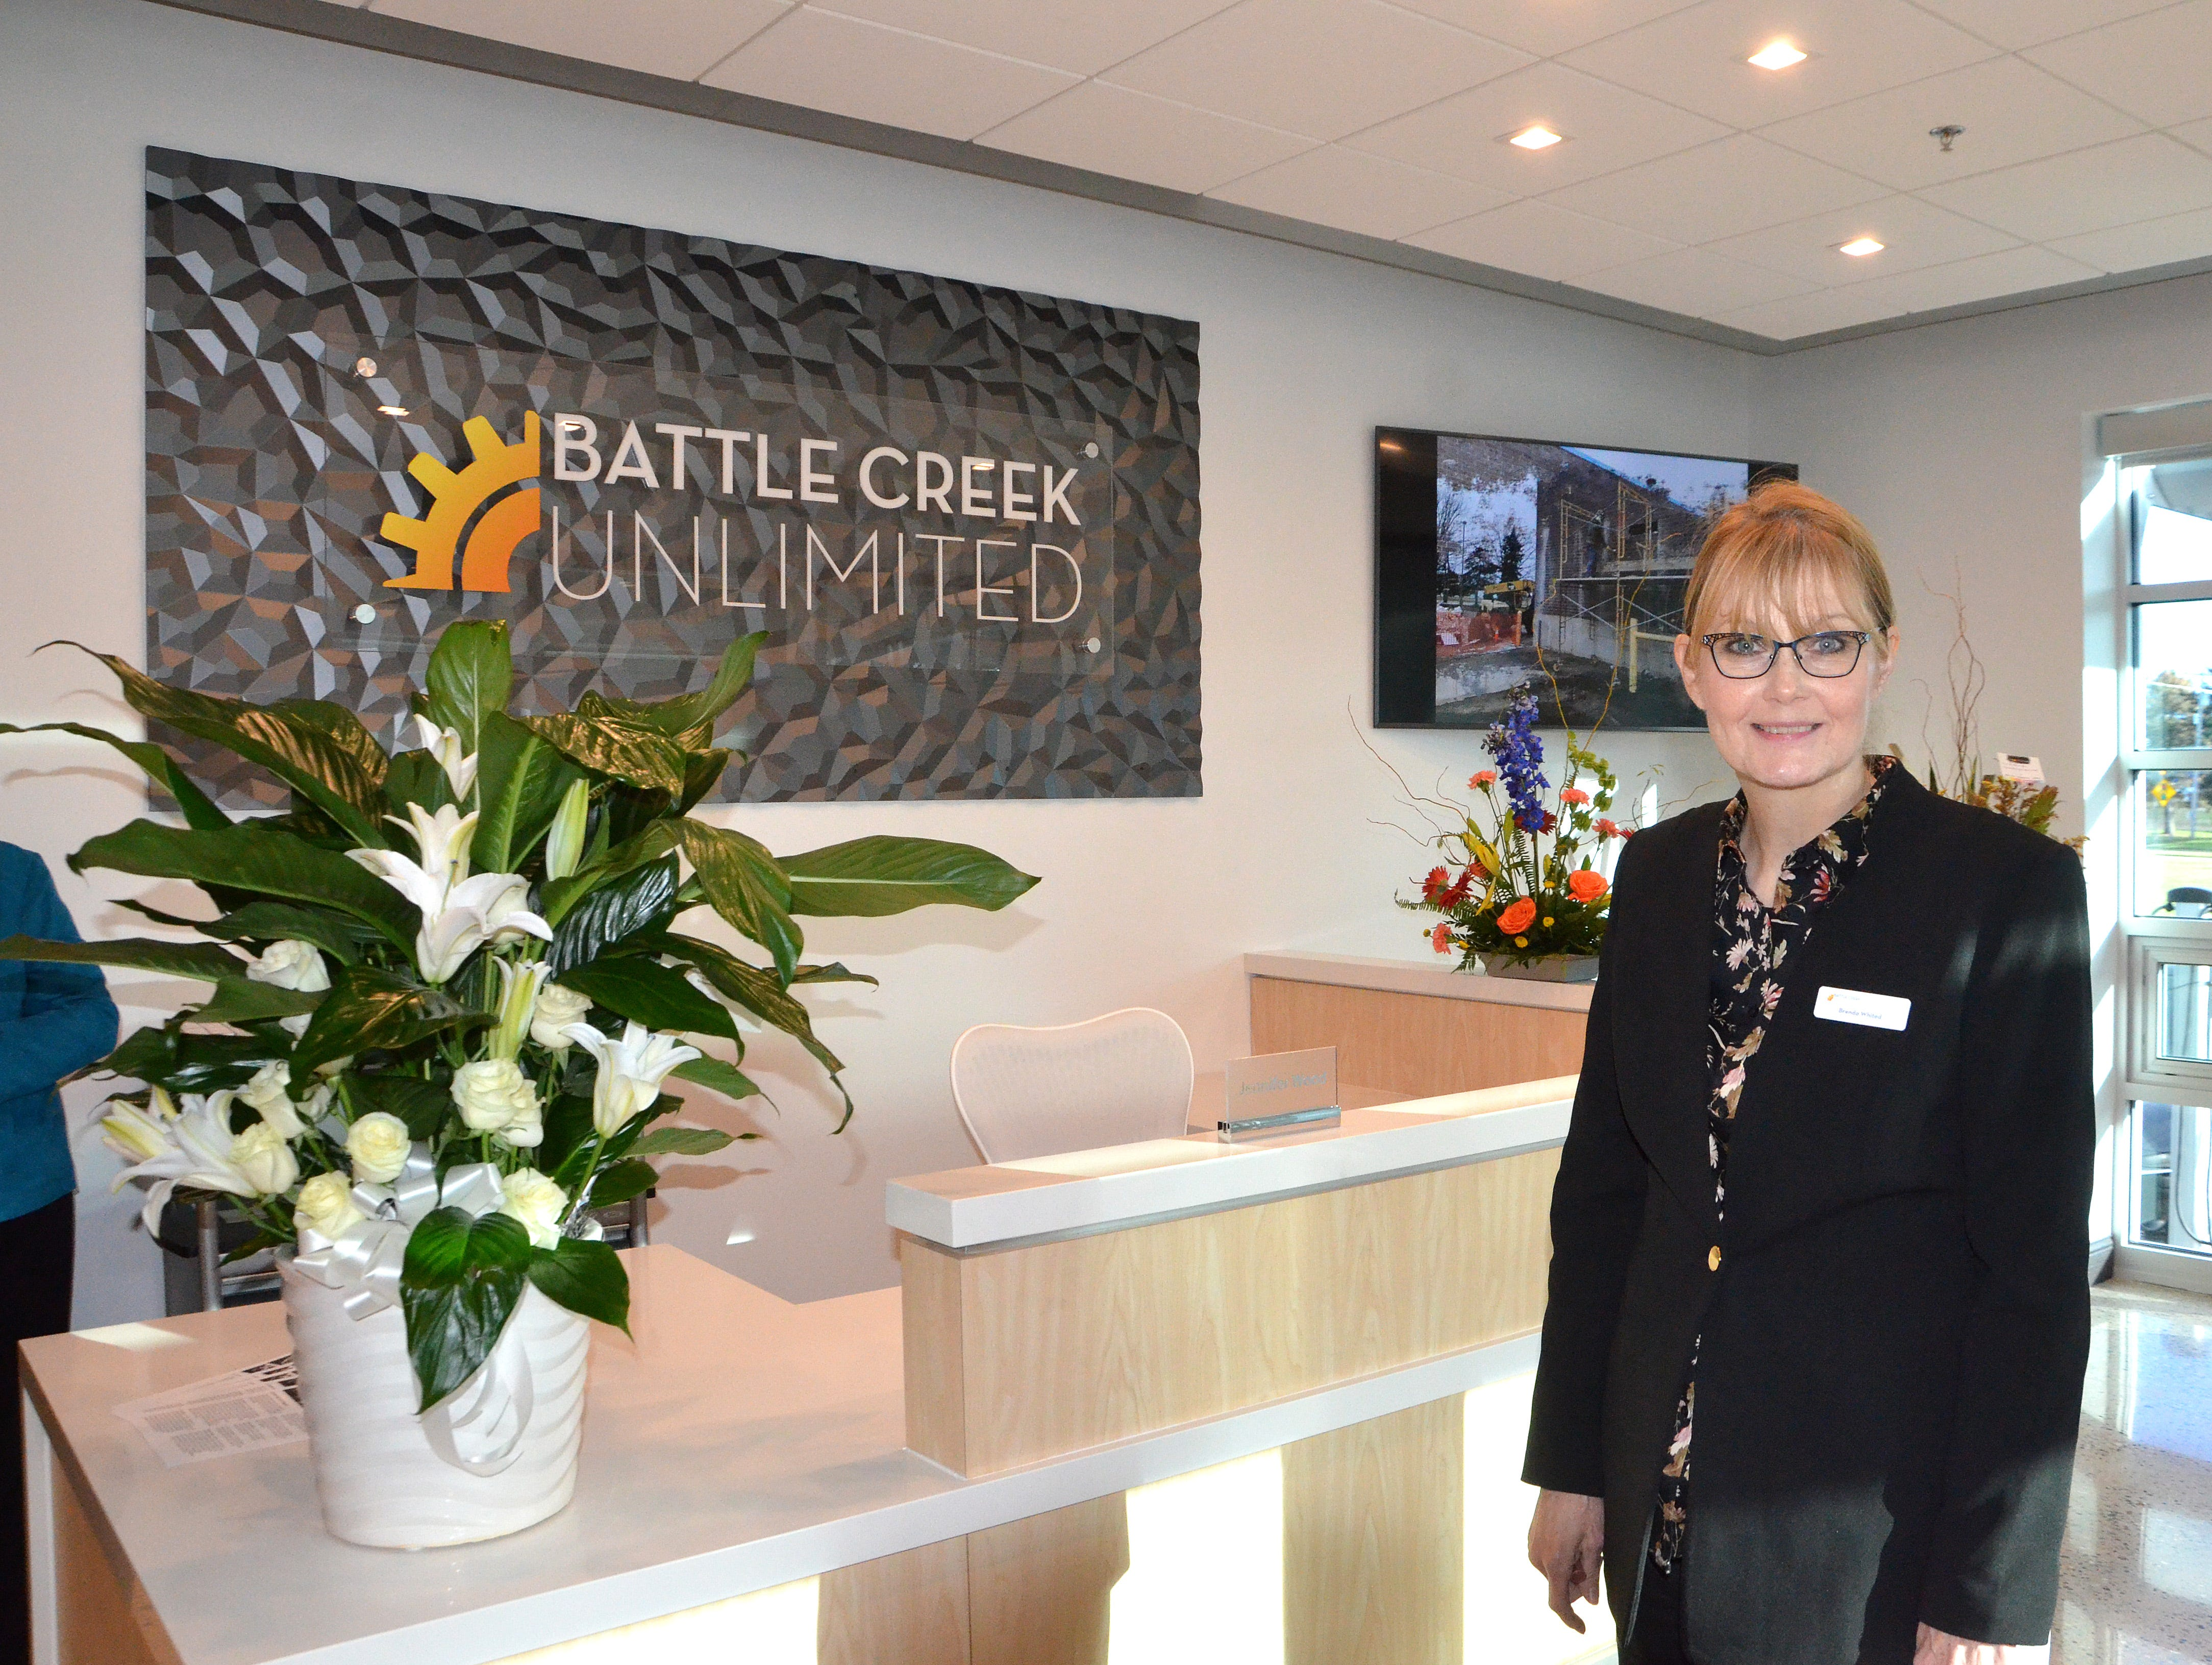 The entrance to Battle Creek Unlimited's new office space will remain locked. There will be a reception area for visitors to await entry.